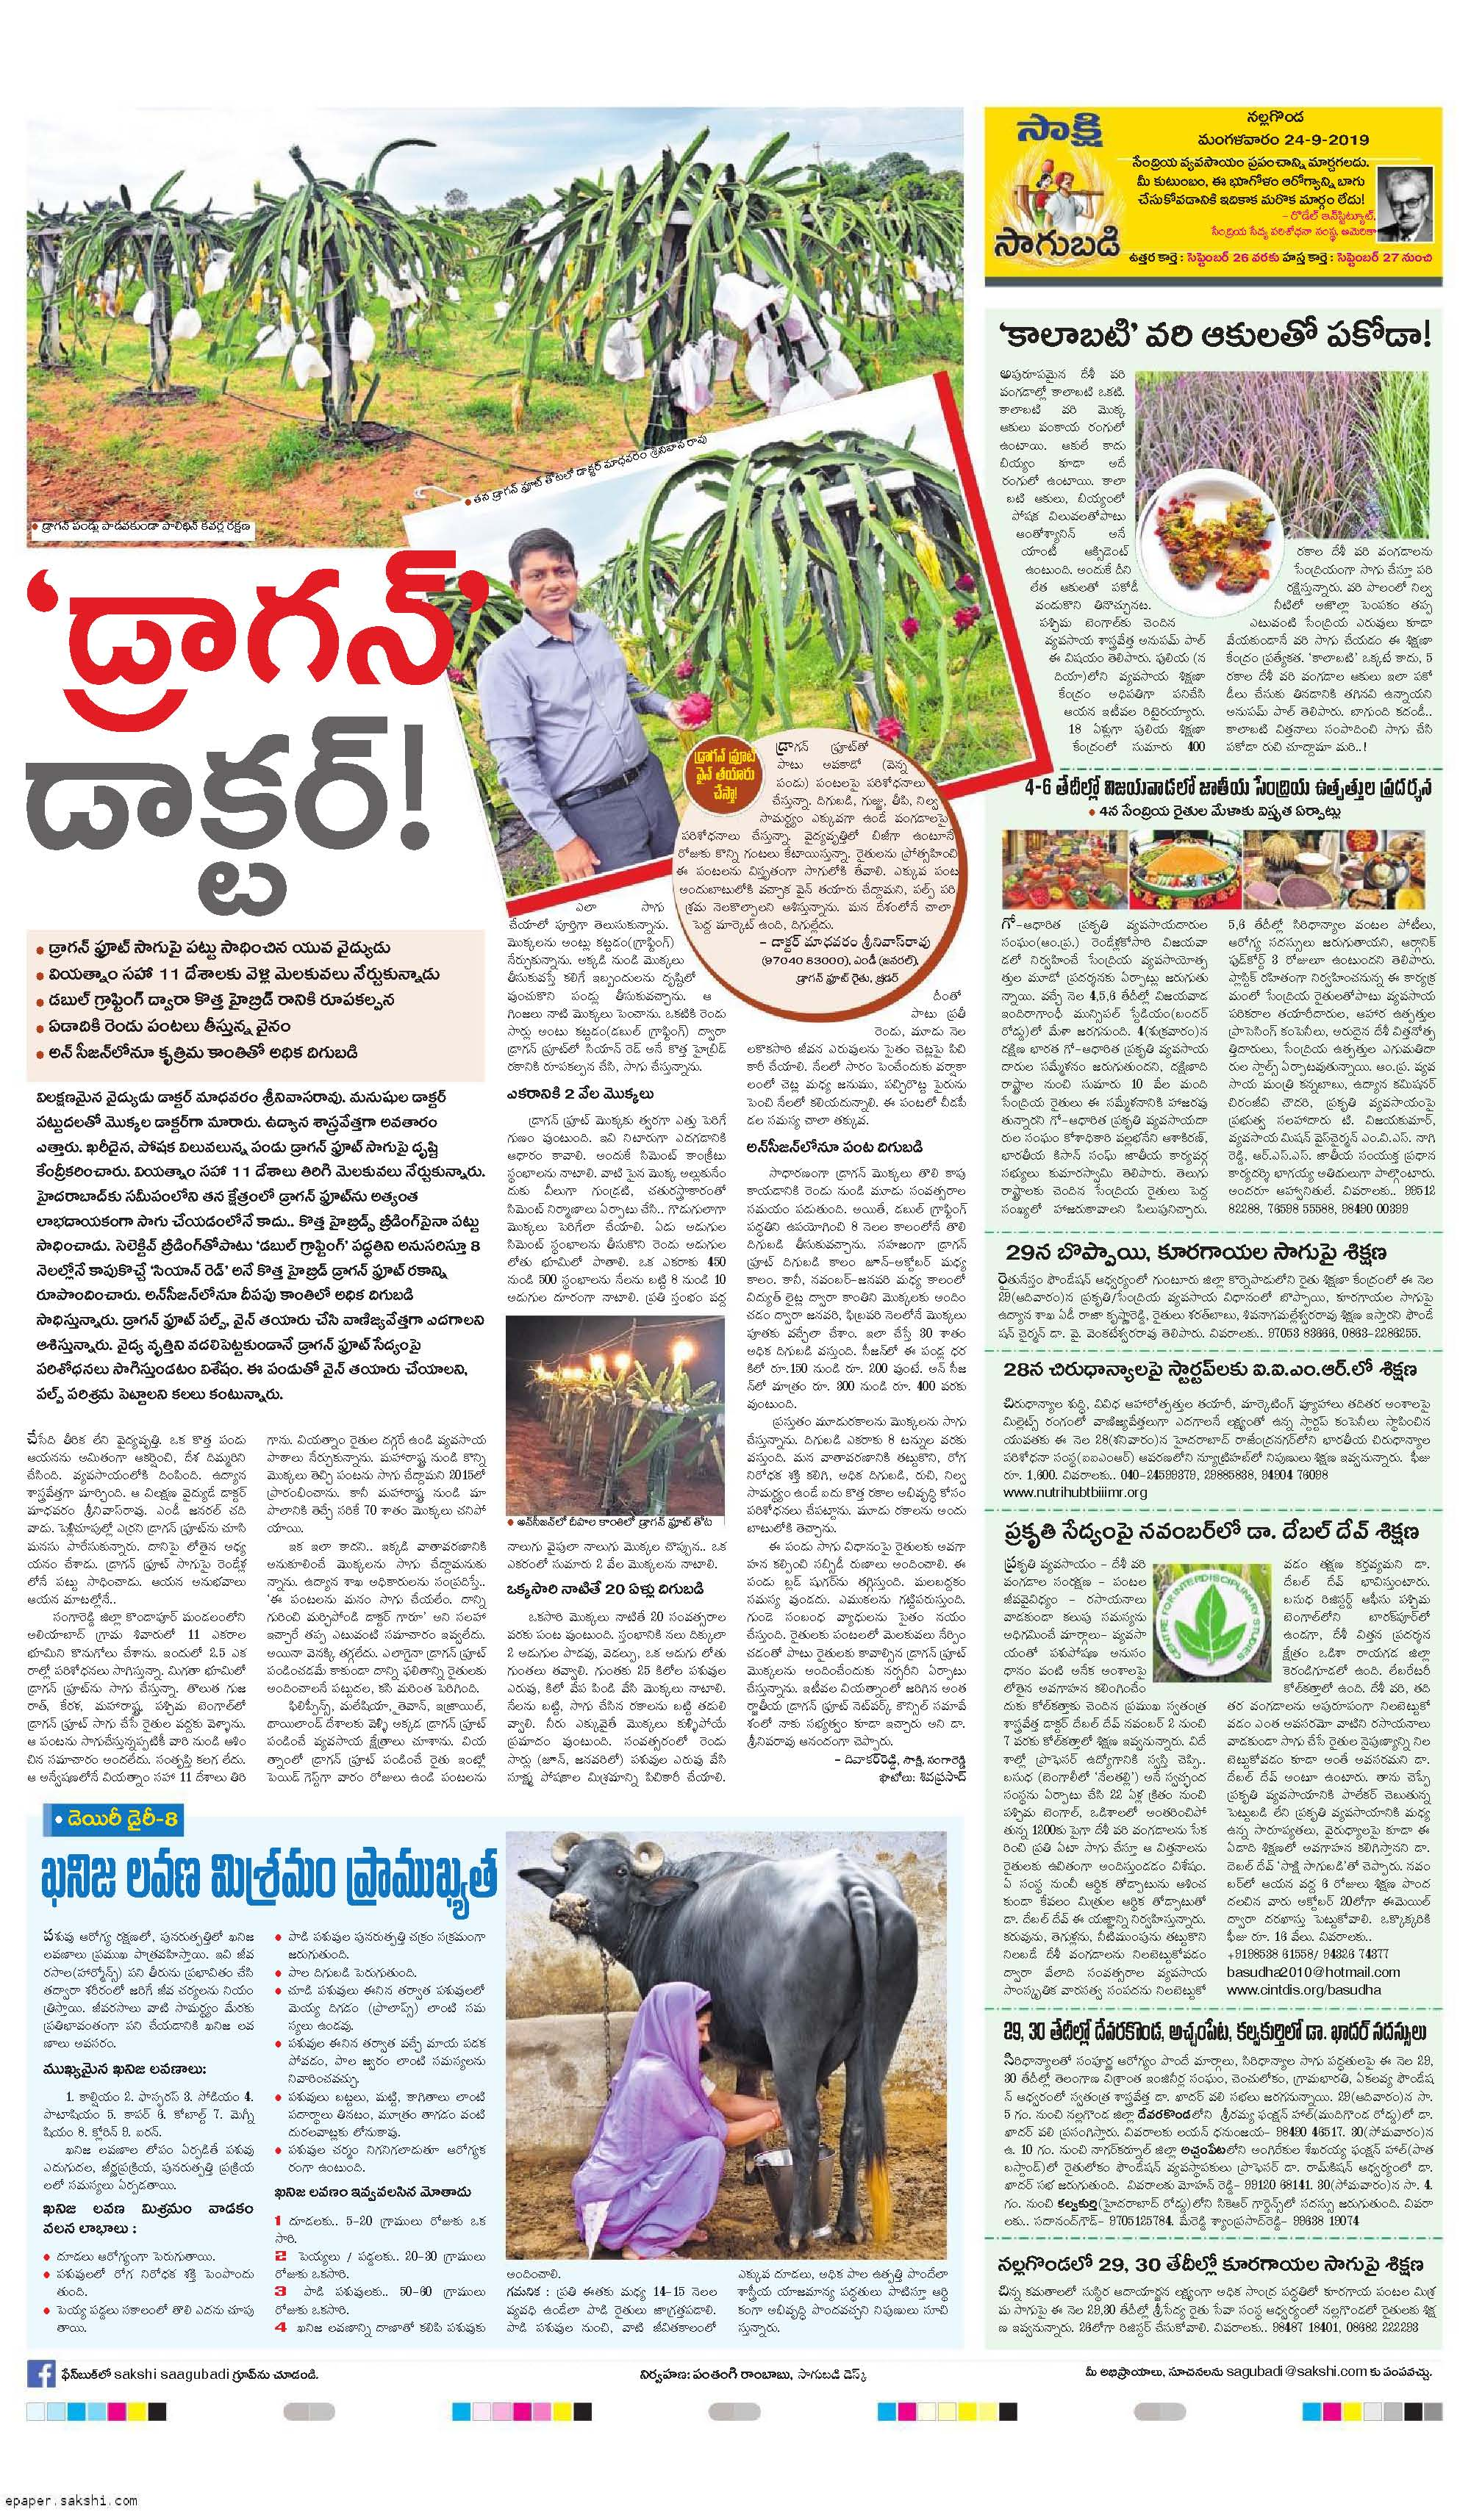 'Dragon Doctor' Our largest dragon-fruit farm story printed one of most popular Sakshi newspaper